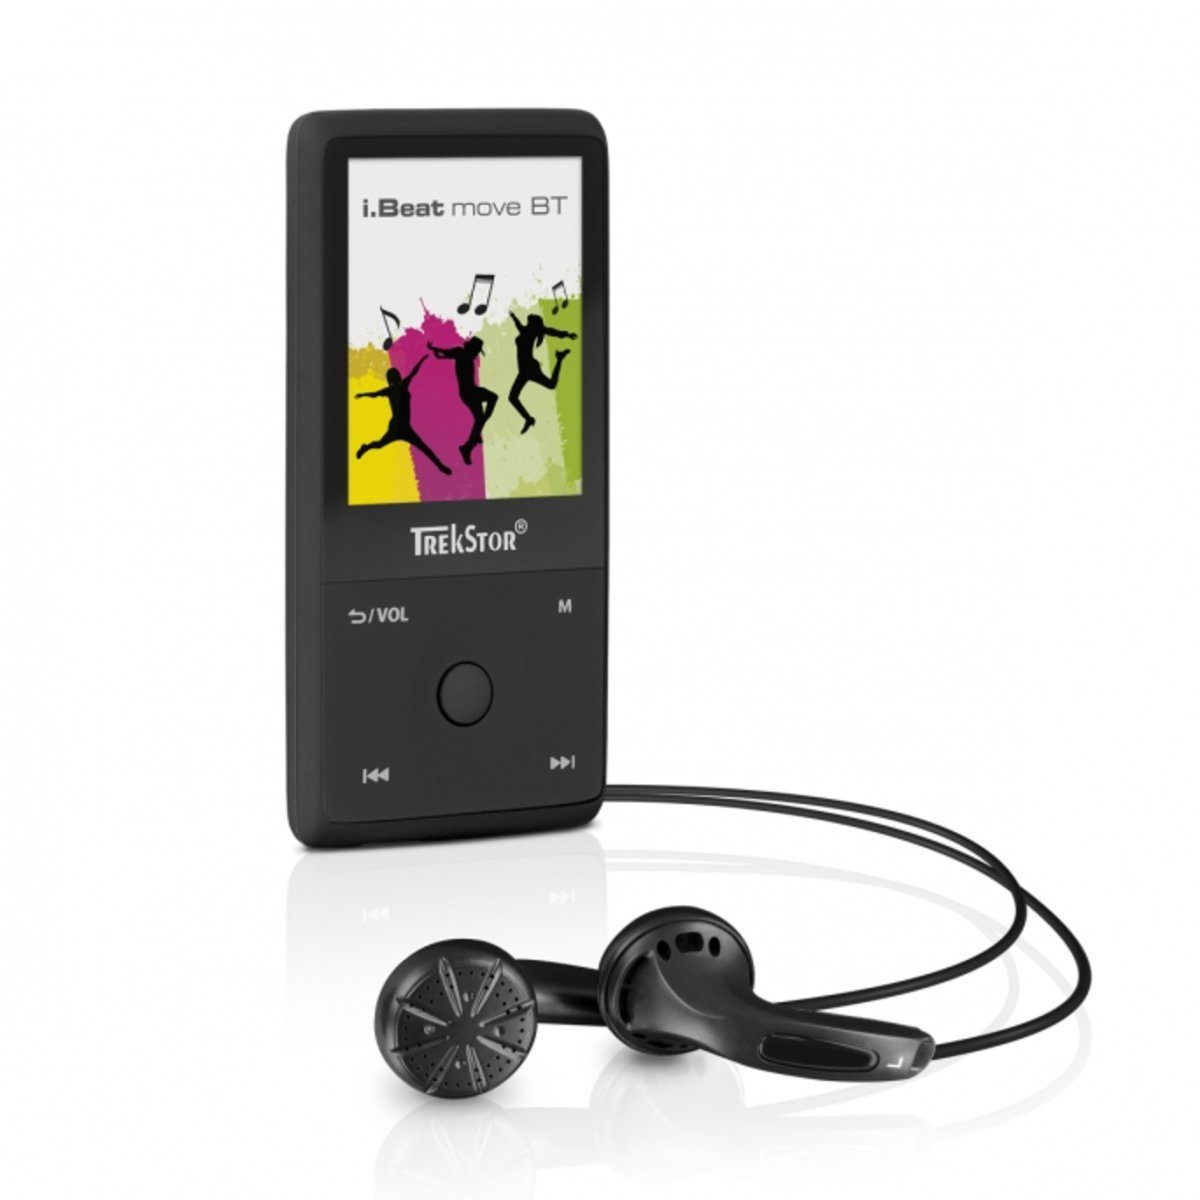 TrekStor MP3-Player »i.Beat move BT 8GB, schwarz«